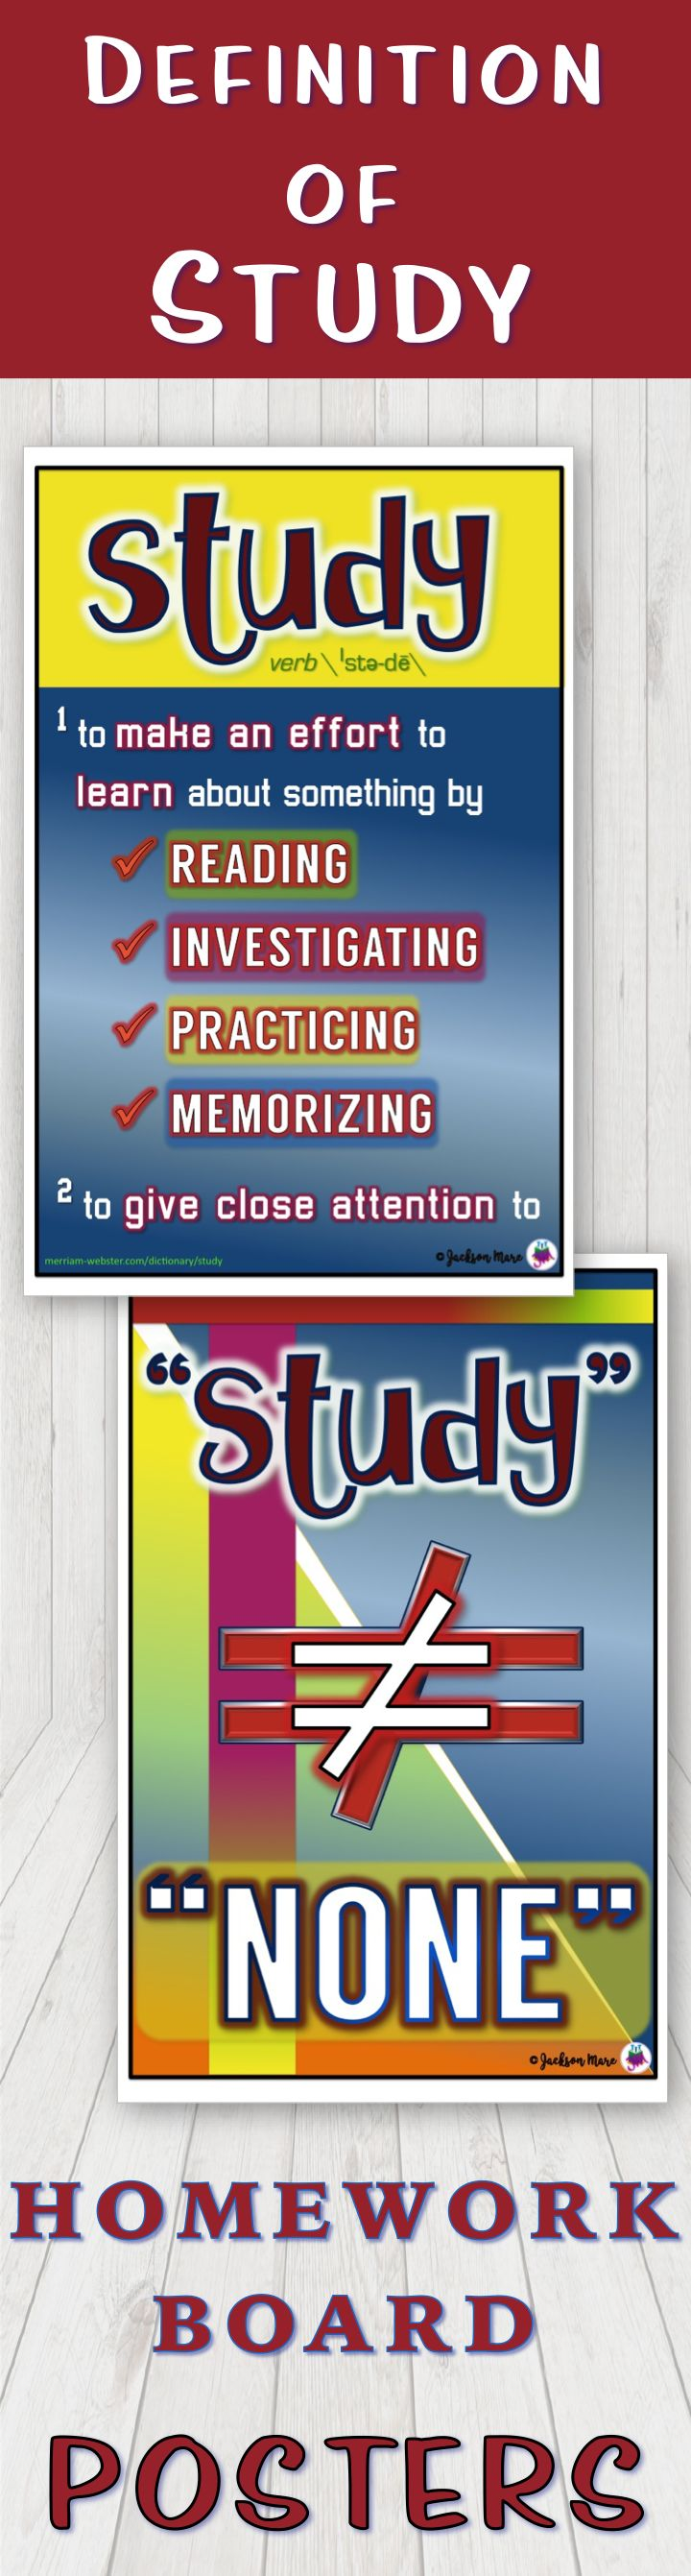 """Ever have those students who think that the word """"study"""" written on the Homework Board means """"none?""""  Hang these 11"""" x 17"""" posters on your classroom to remind them of the true definition of """"study.""""  2 posters to print included: - """"study"""" poster with the Merriam-Webster student definition of the word. - """"study ≠ none"""" poster"""